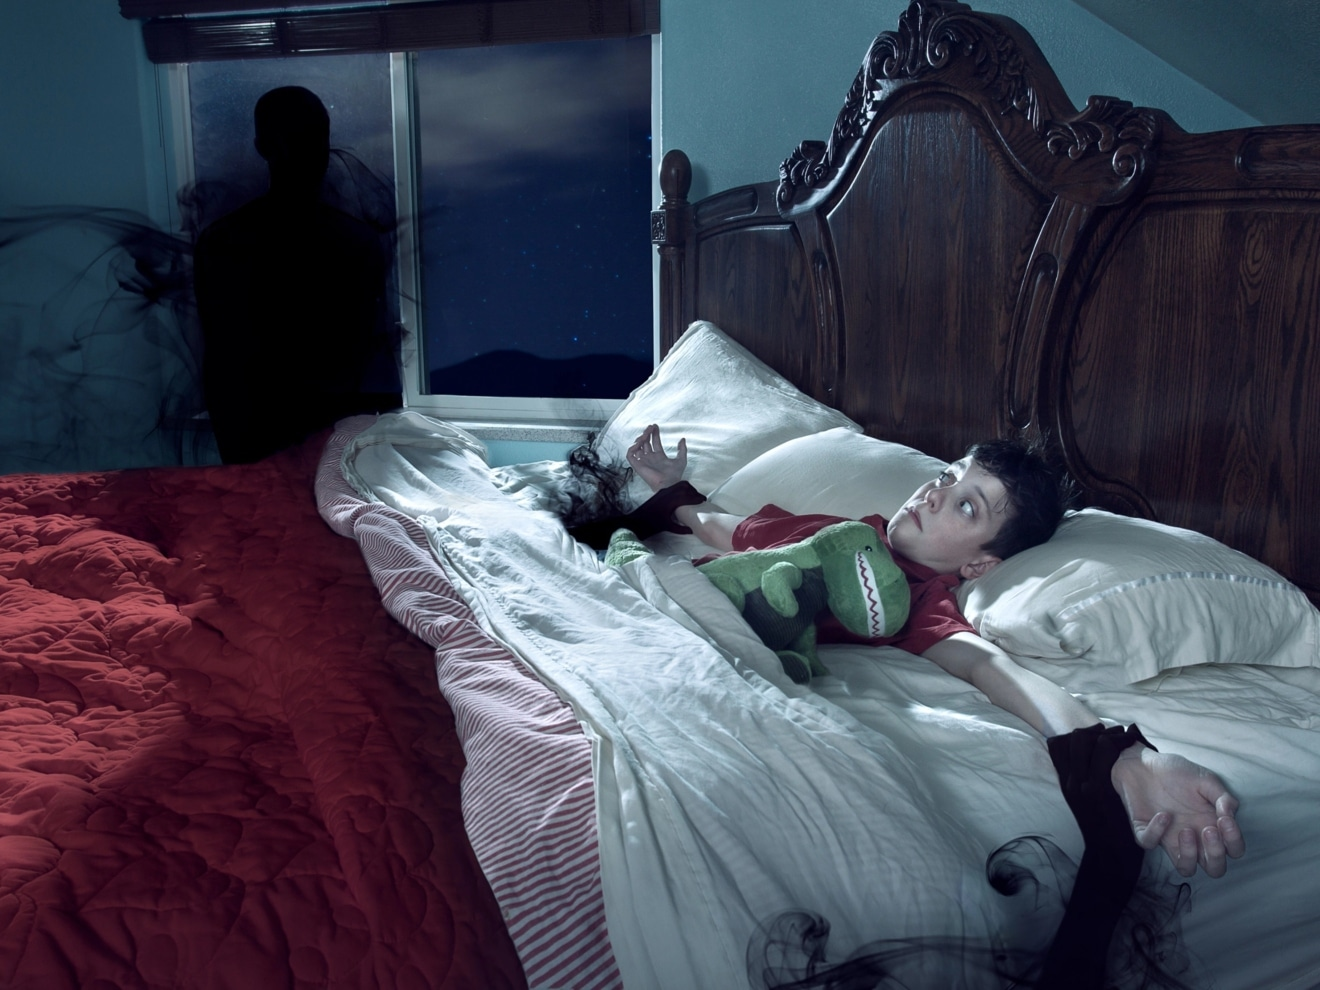 Nightmares, Sleep Paralysis and Witchcraft Accusations